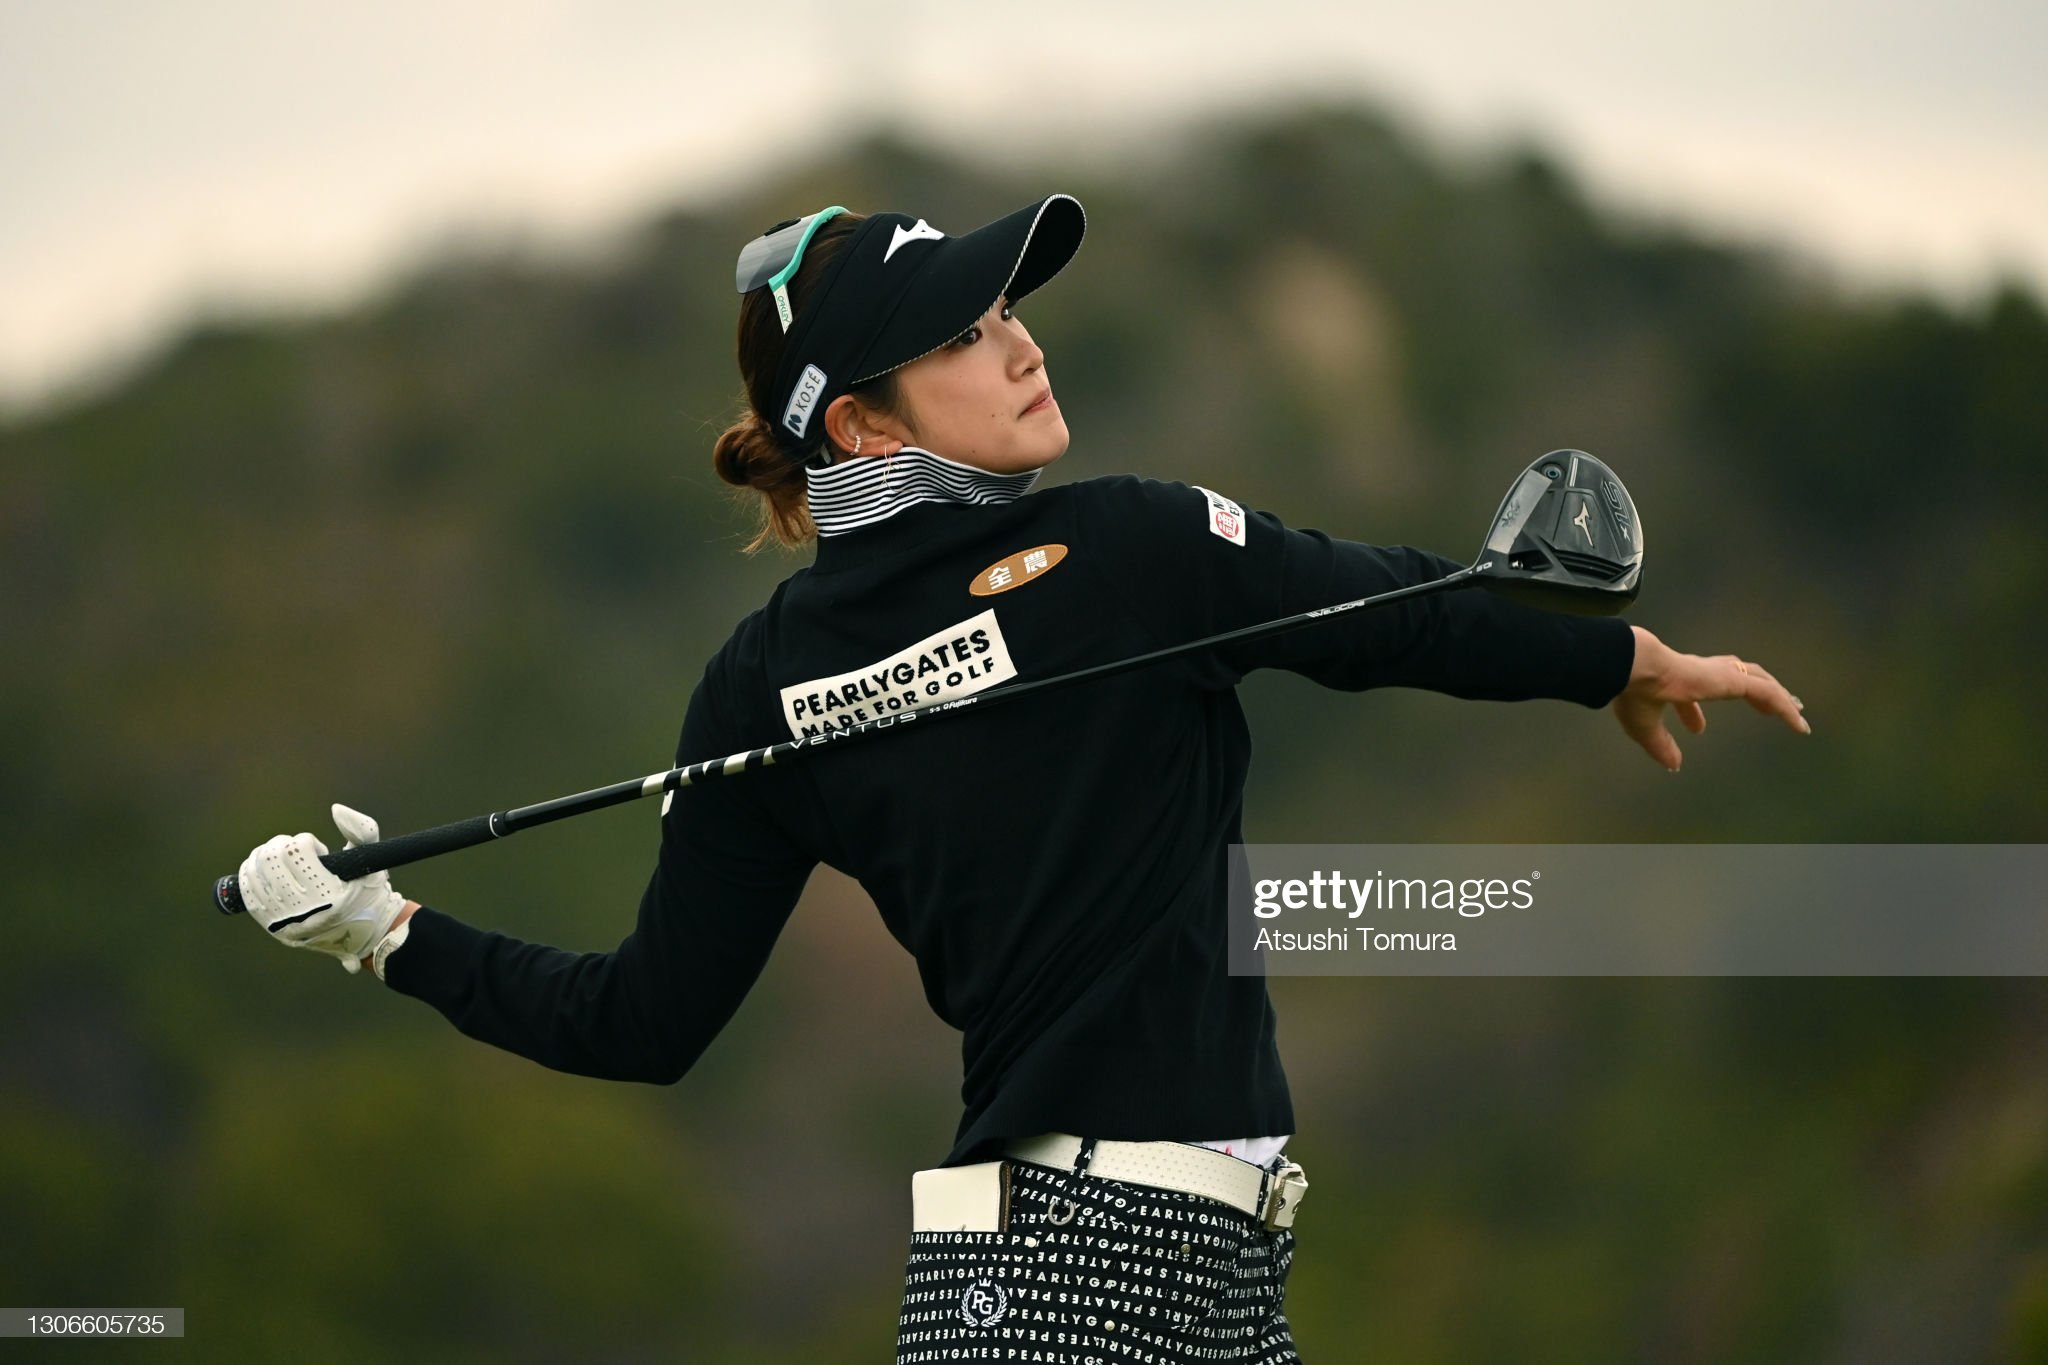 https://media.gettyimages.com/photos/erika-hara-of-japan-hits-her-tee-shot-on-the-12th-hole-during-the-picture-id1306605735?s=2048x2048